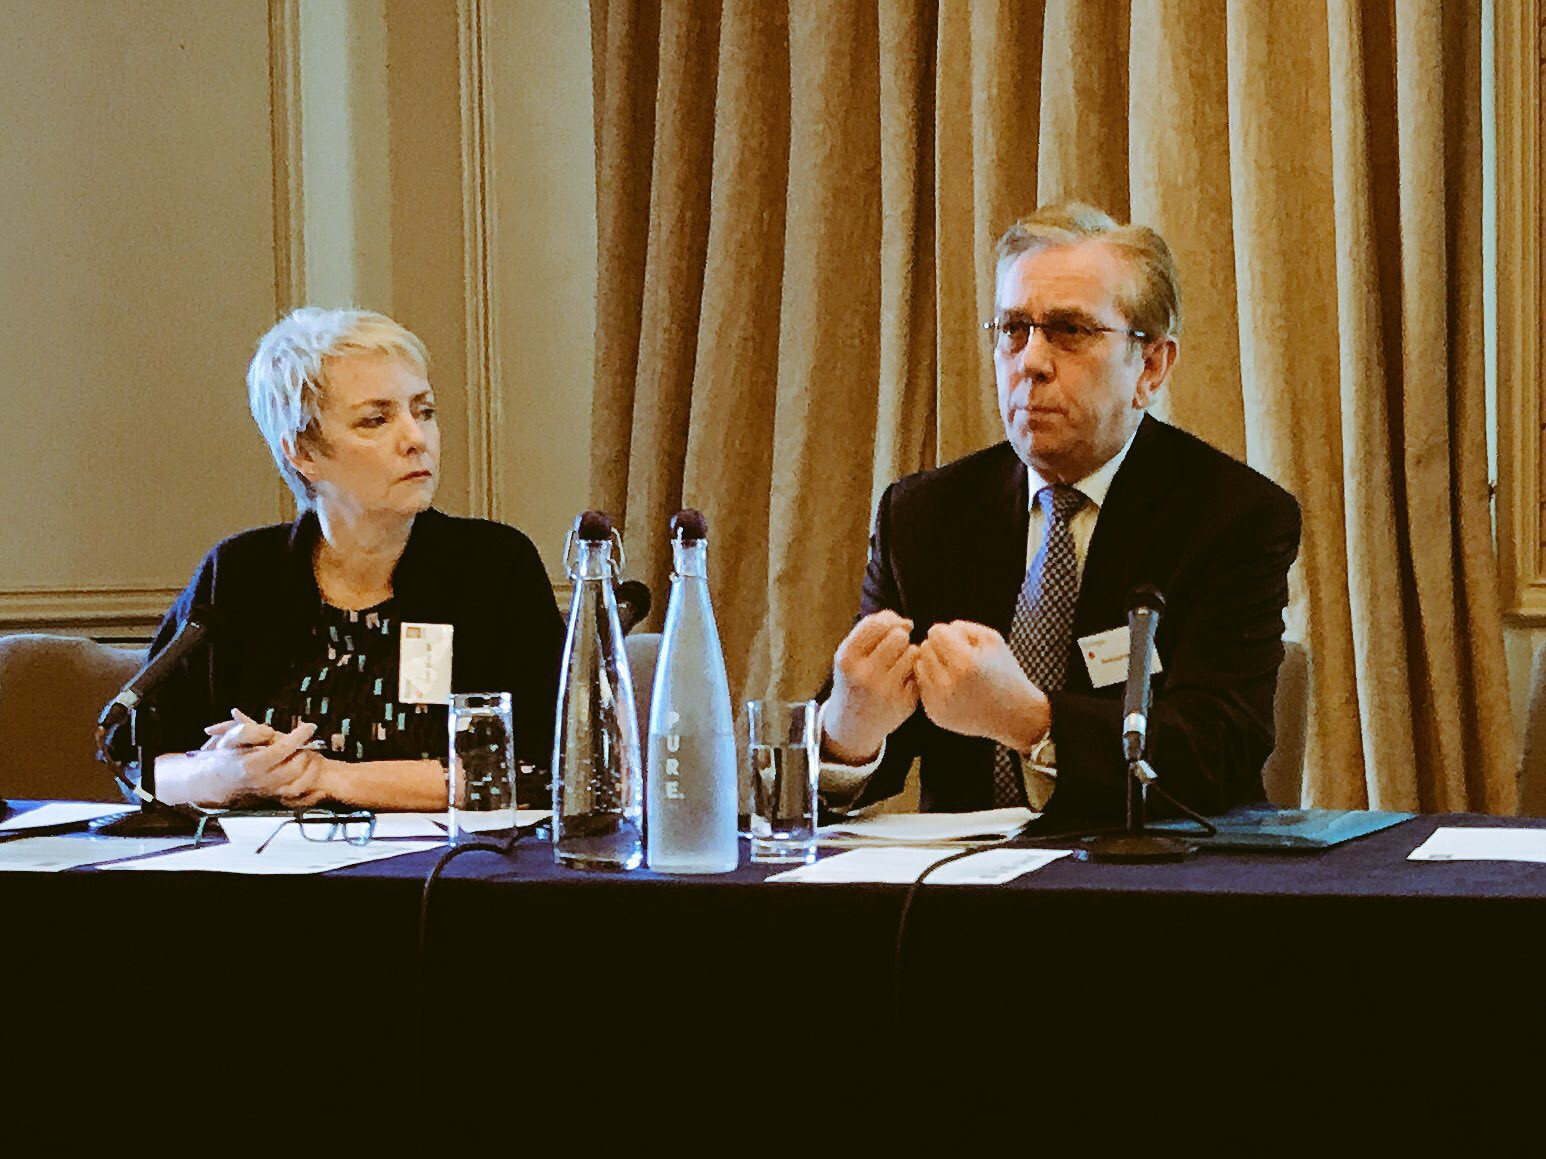 Sir Robert Naylor introduces UK Govt reaction to his report at the Westminster Forum 27th February 2018